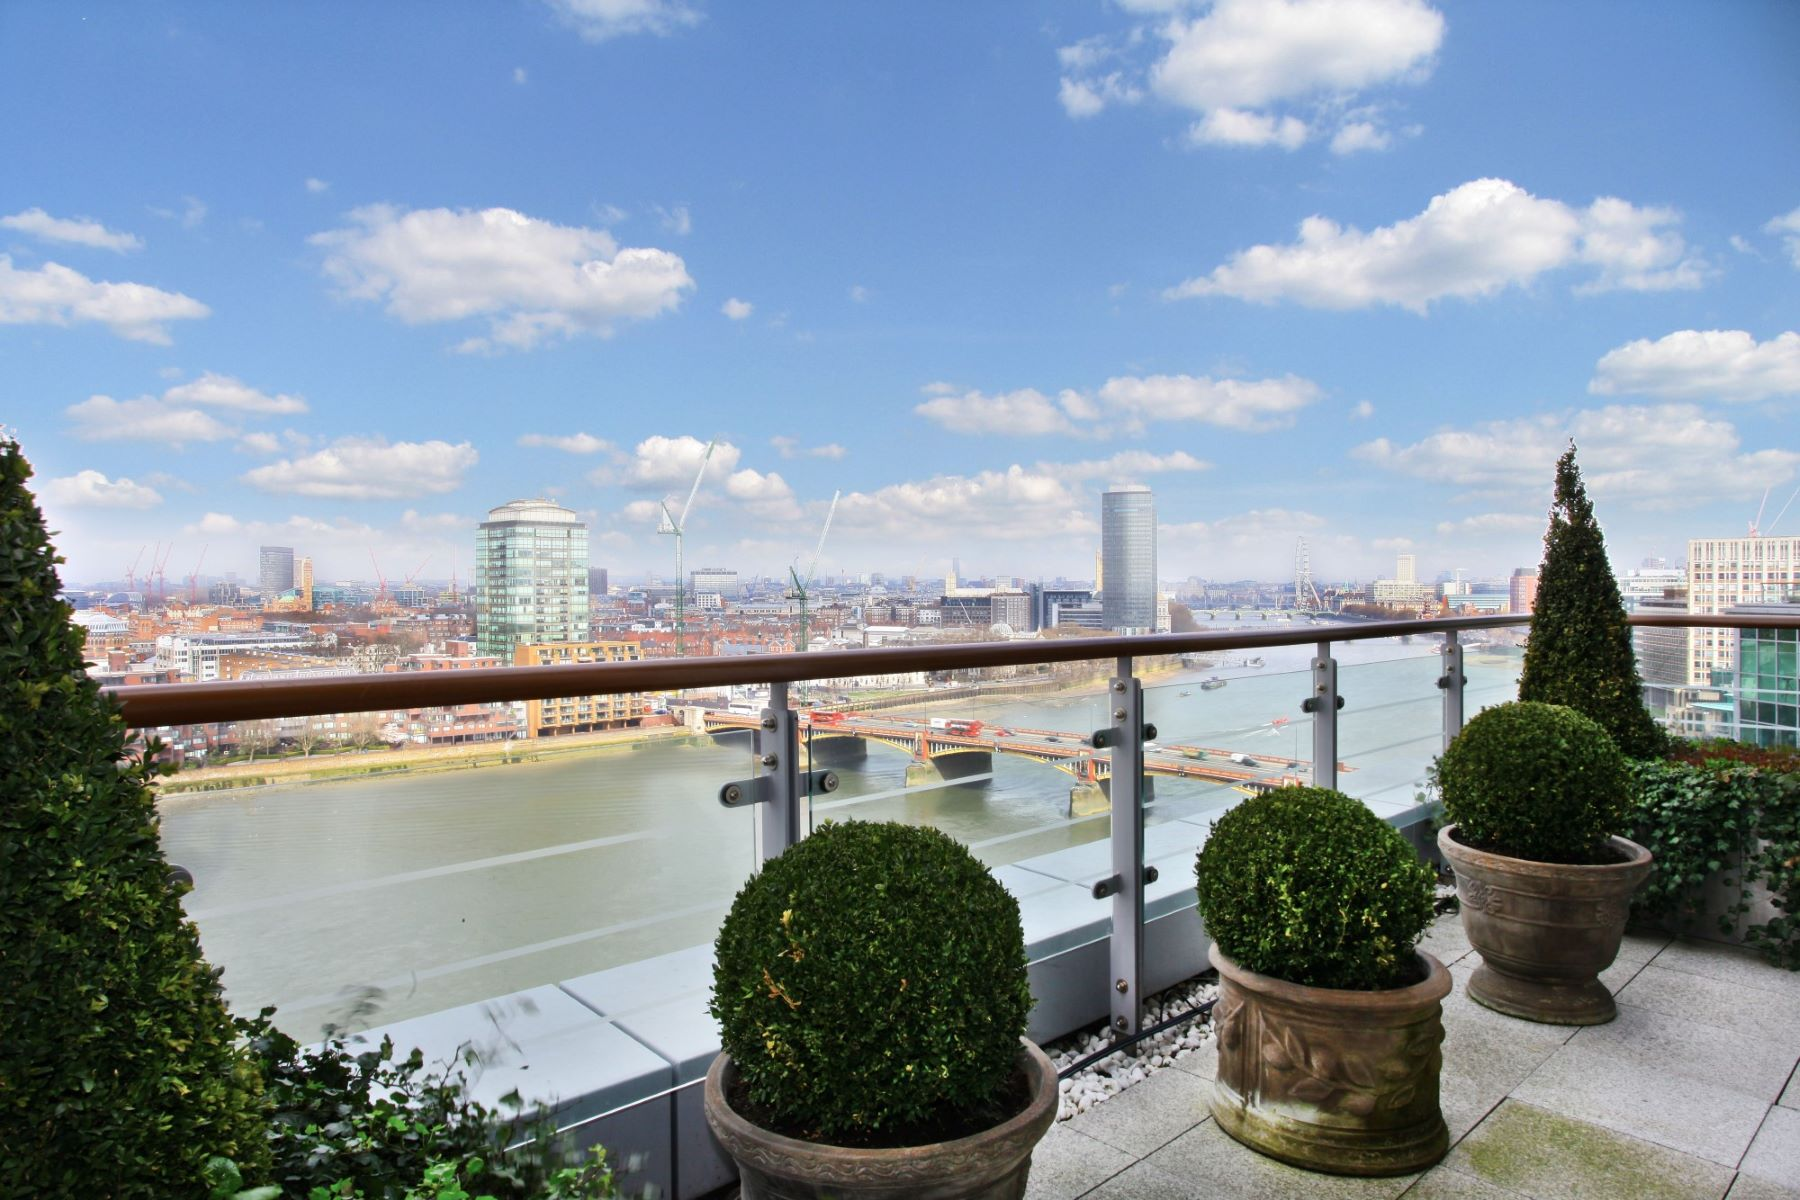 Apartment for Sale at Kestrel House, St Georges Wharf, London London, England SW8 2AZ United Kingdom